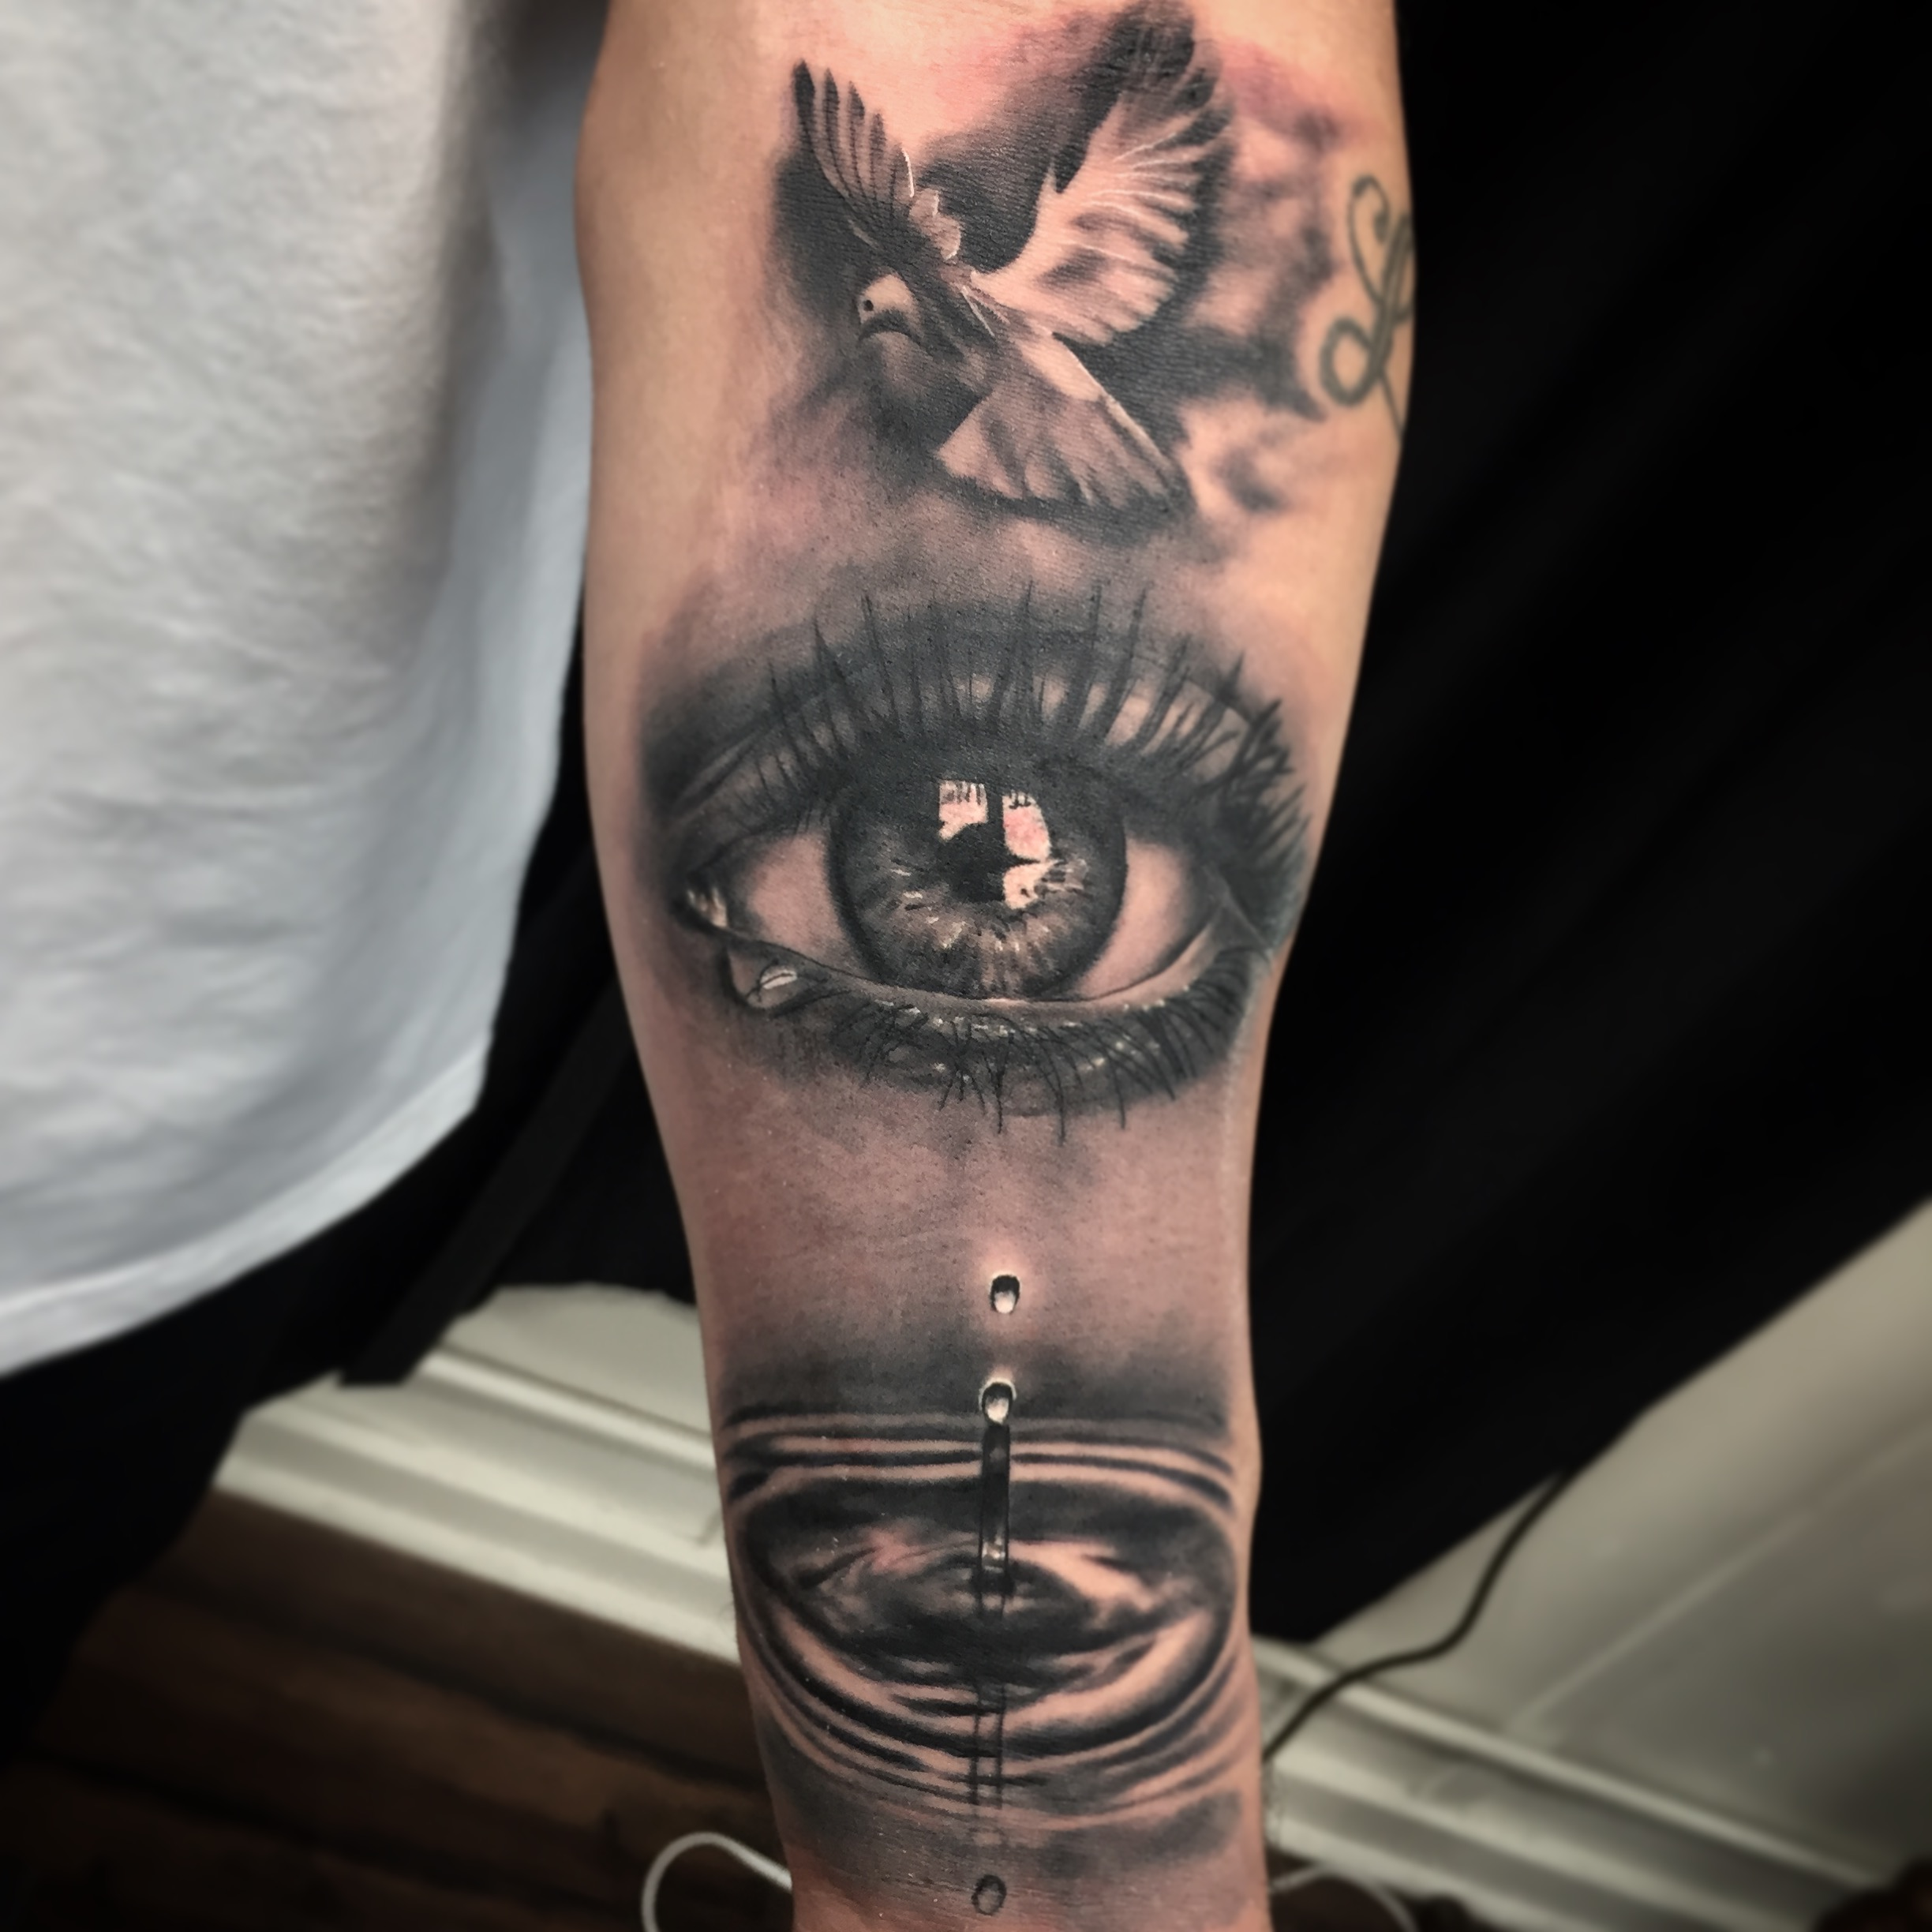 High End Black and Grey Tattoo